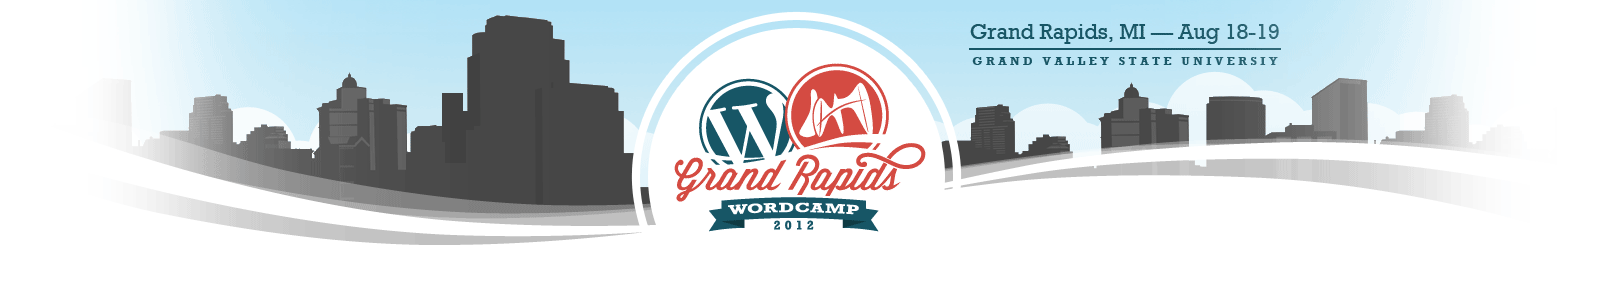 Announcing WordCamp Grand Rapids 2012!